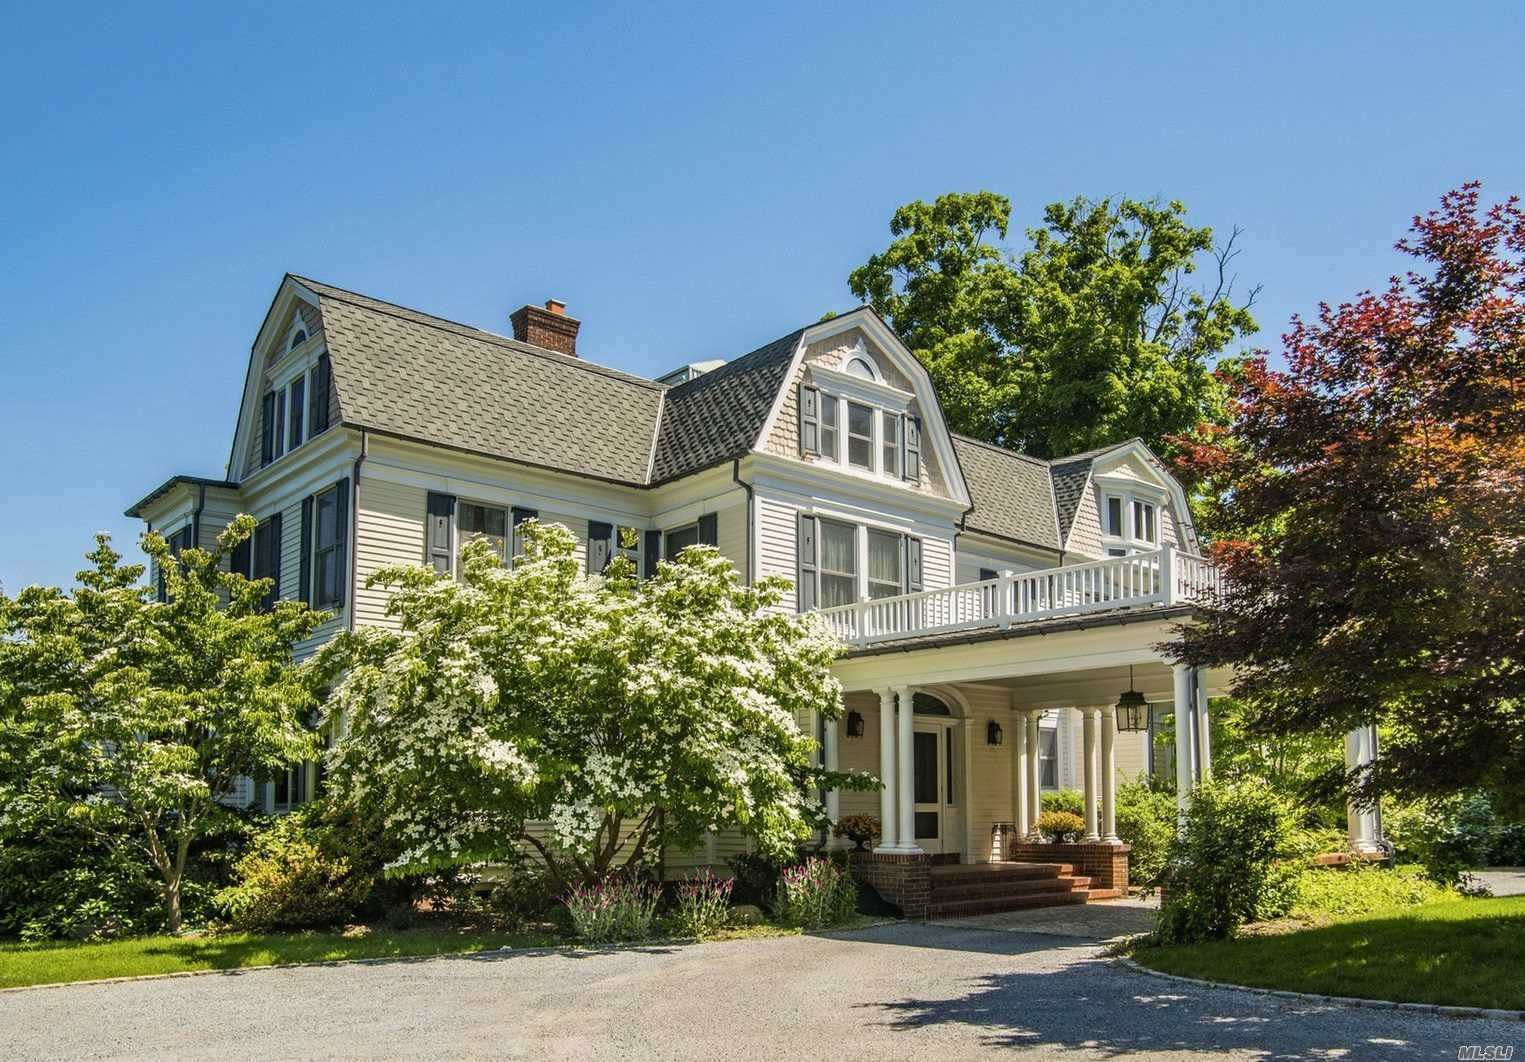 190 Ft Of Spectacular Waterfront Grace This W.B. Tuthill-Designed Architecturally Historic Home. Updated For Today's Buyer With Incredible Water Views Of Huntington Bay Out To The Long Island Sound. This Exquisite Home Is Unparalleled In It's Fine Craftsmanship. 3 Floors Of Living Space, Gourmet Kitchen And Master Suite With Balcony. Beautifully Landscaped Gardens, Brick Patio, Covered Porch, New Bulkhead, Full Cottage With Bedroom, Kitchen Bath, Living Room. Nathan Hale Beach Assoc.(Dues Req'd)